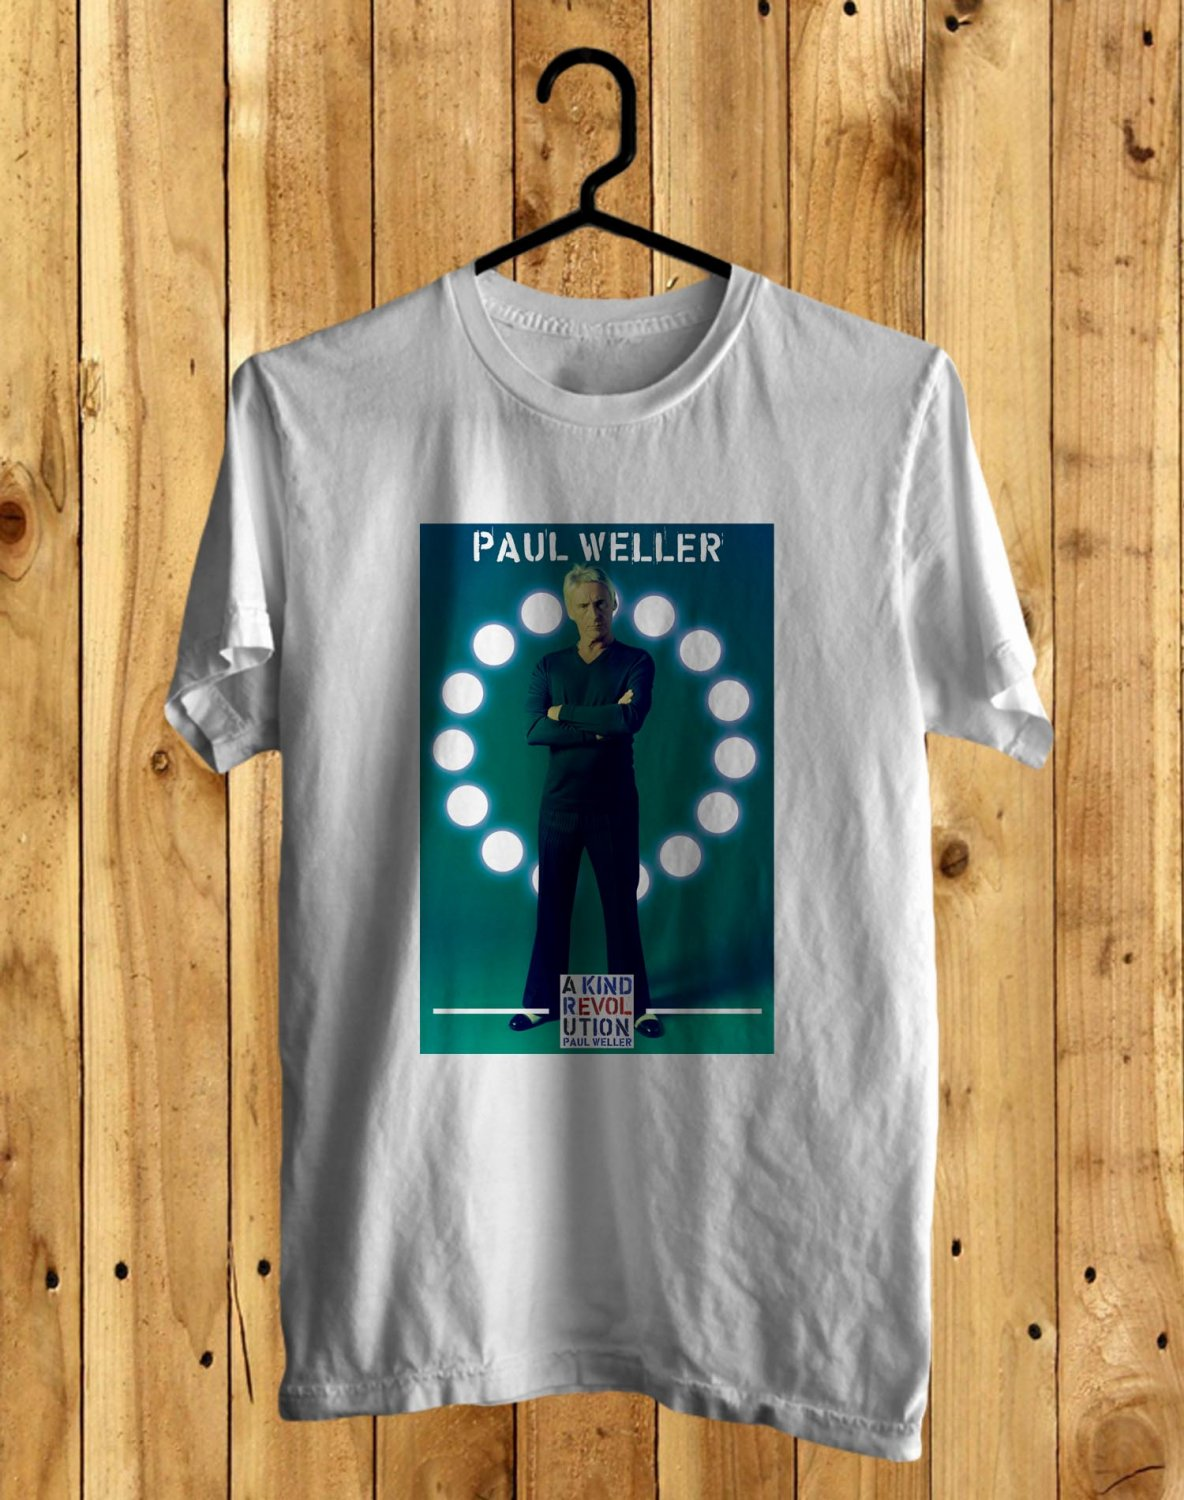 Paul Weller A Kind Revolution Tour 2017 White Tee's Front Side by Complexart z1